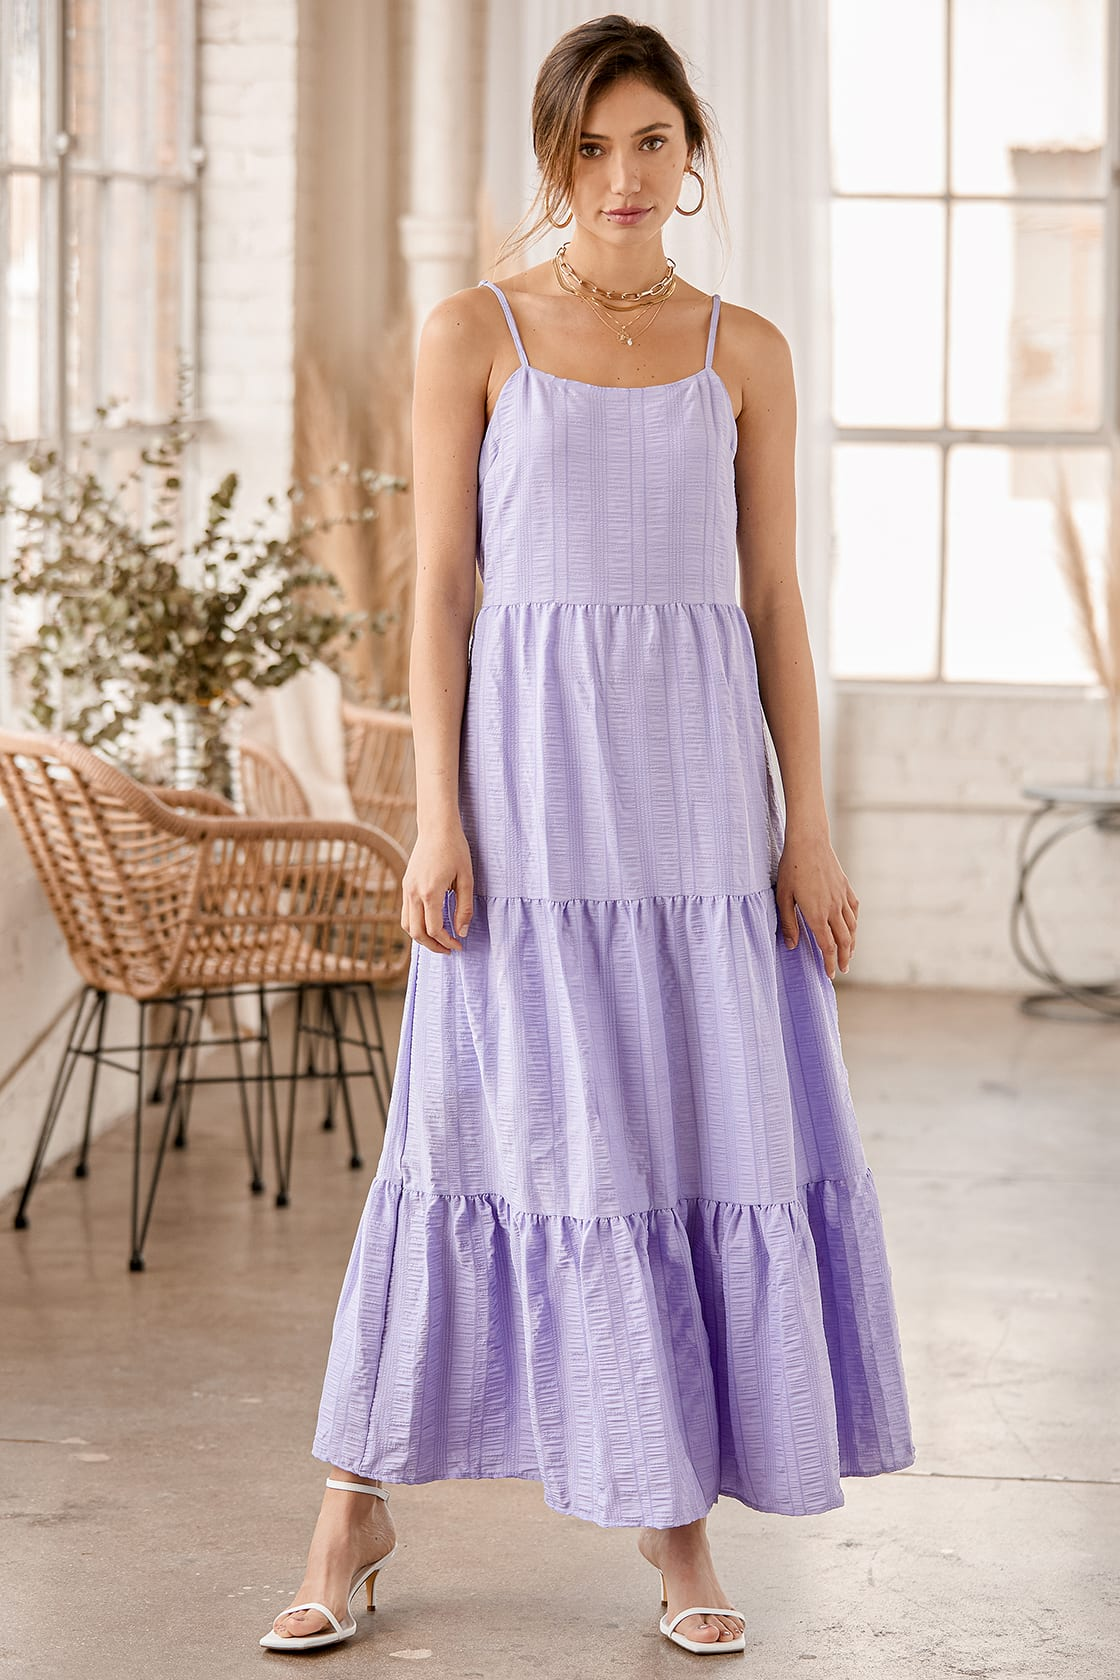 Lulus Magical Soiree Lavender Sleeveless Tiered Maxi Dress